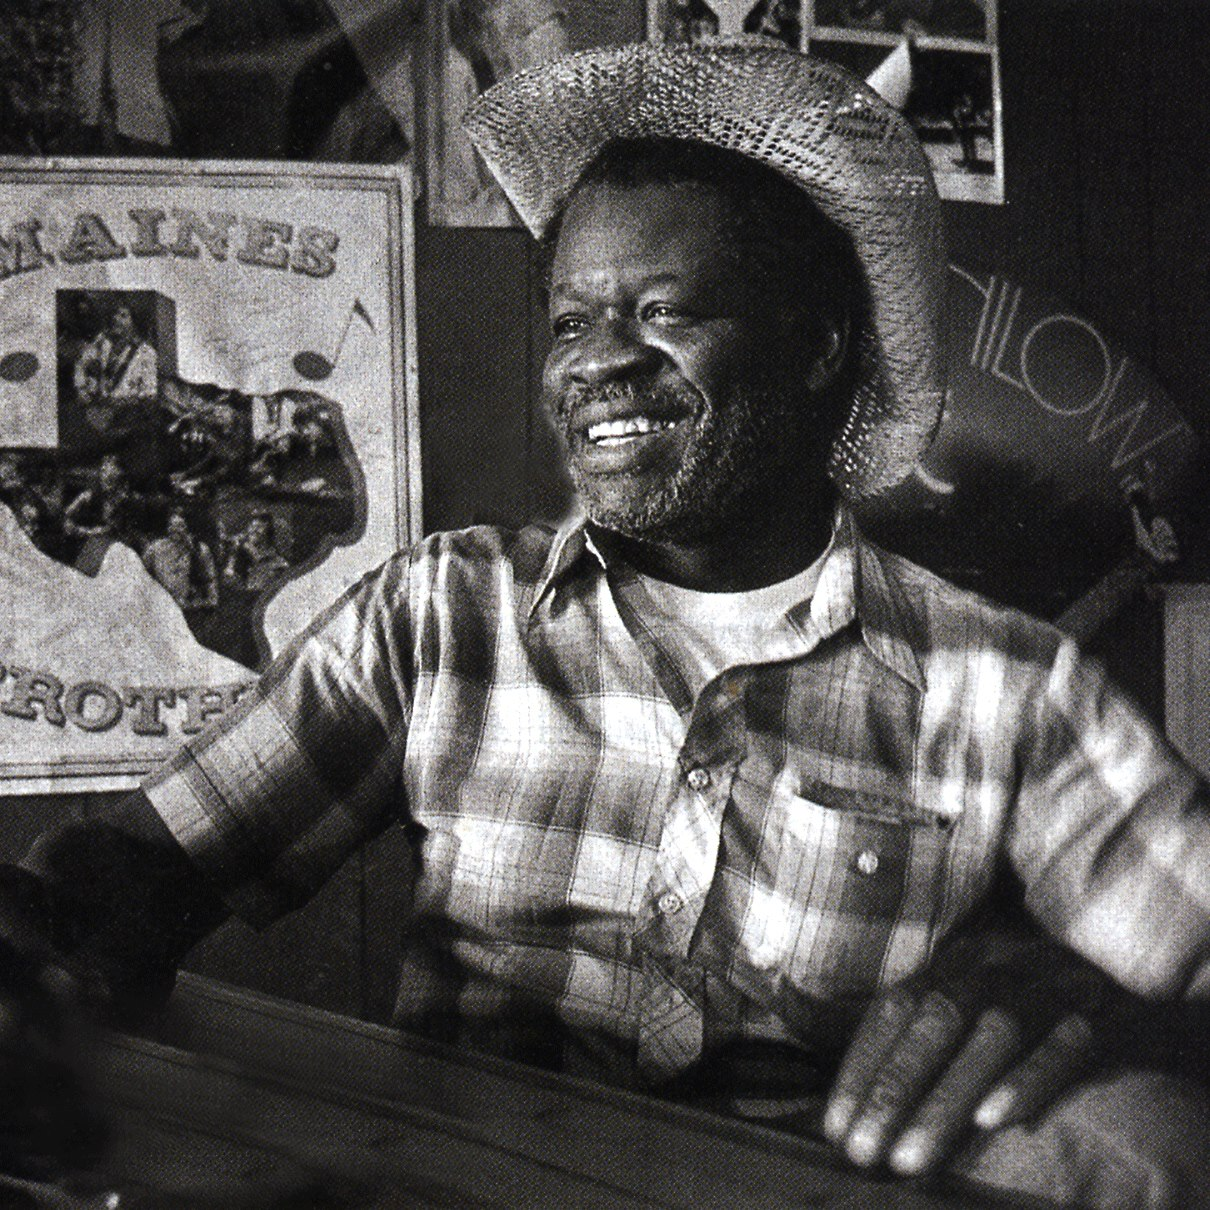 Stubb's Bar-B-Q's Late Founder C.B. Stubblefield Is Being Inducted Into the Barbecue Hall of Fame